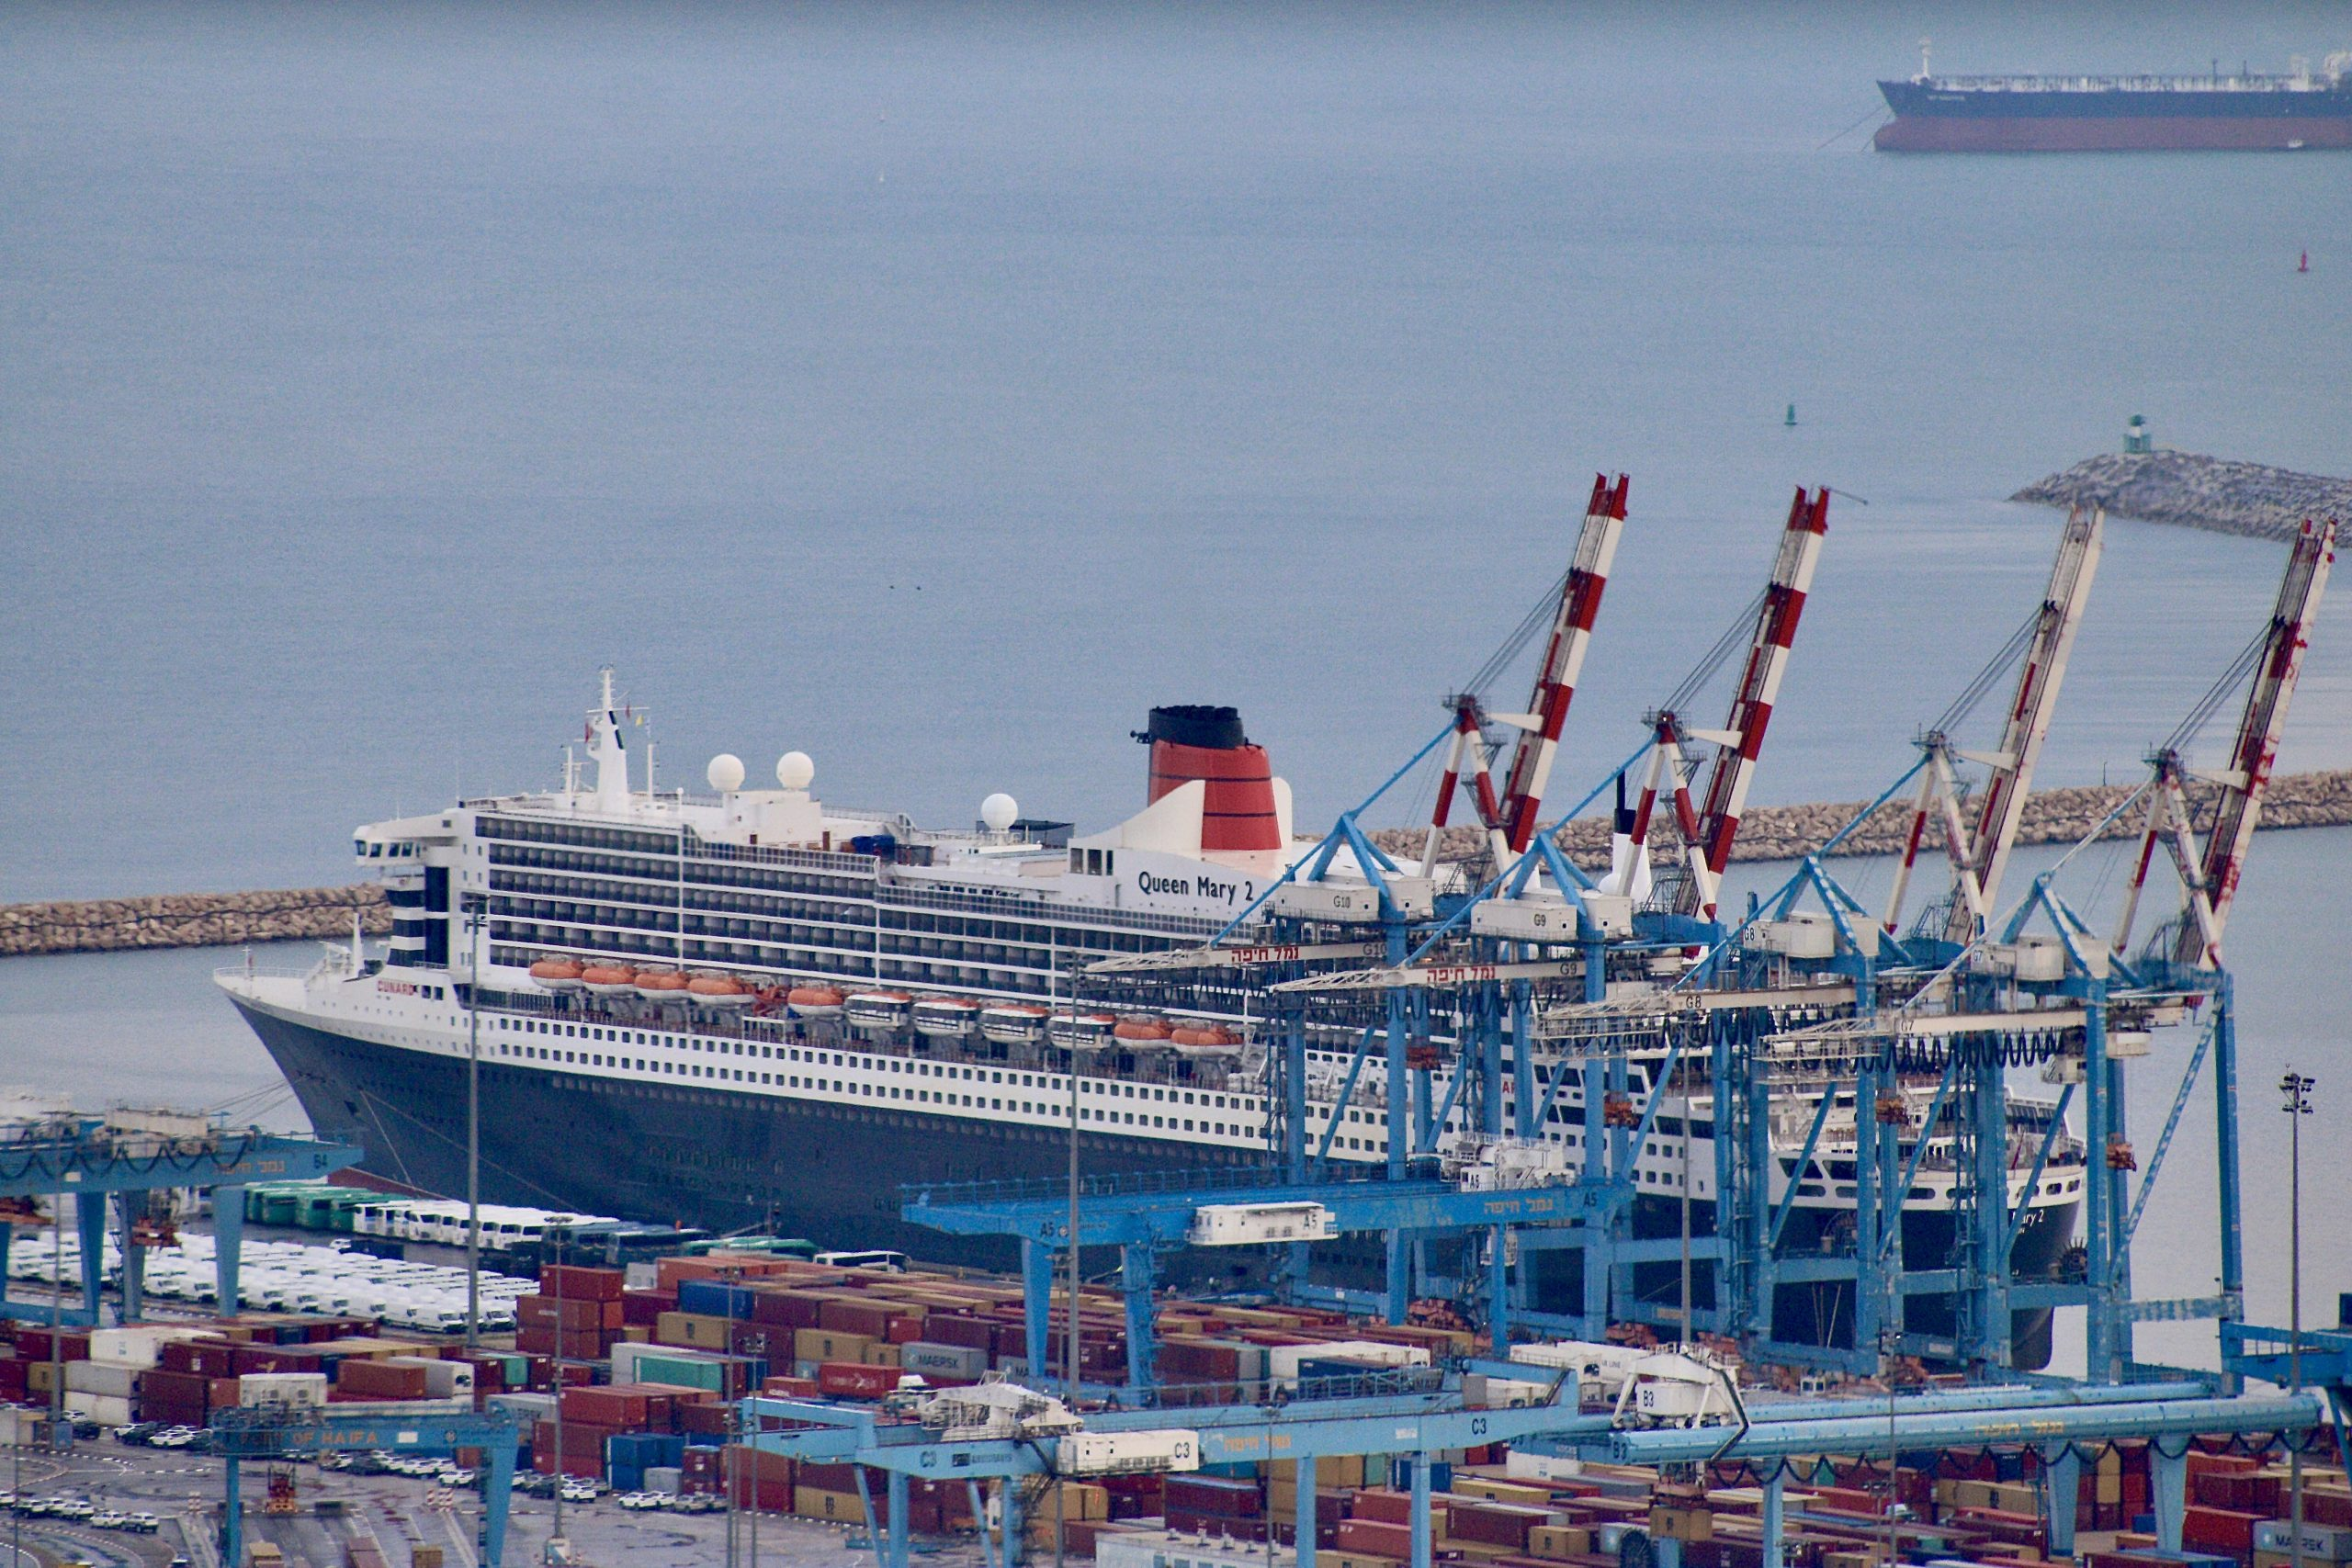 RMS Queen Mary 2, a British transatlantic cruise liner, the flagship of Cunard Line